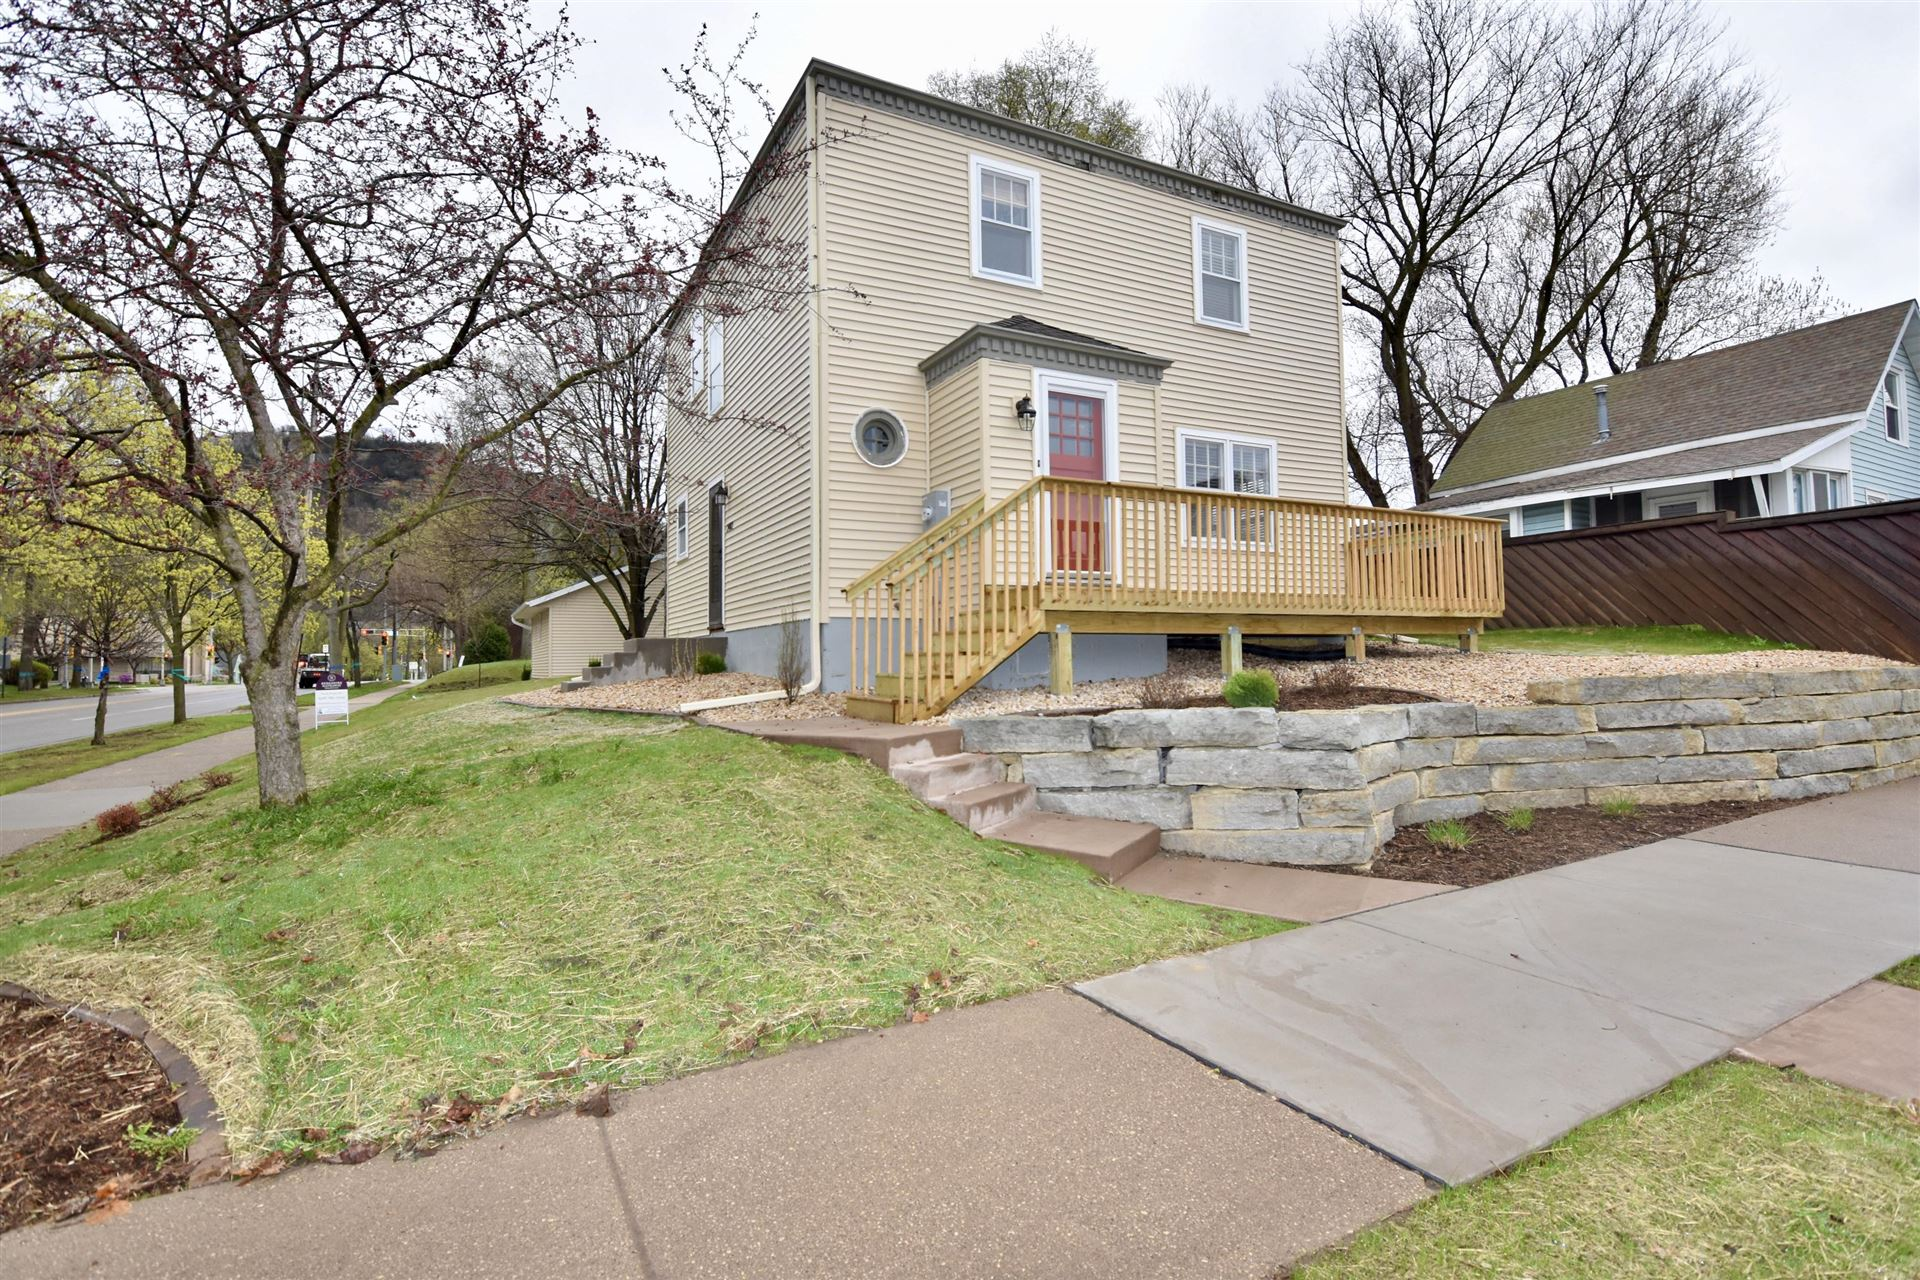 2402 Main st, La Crosse, WI 54601 - MLS#: 1686715